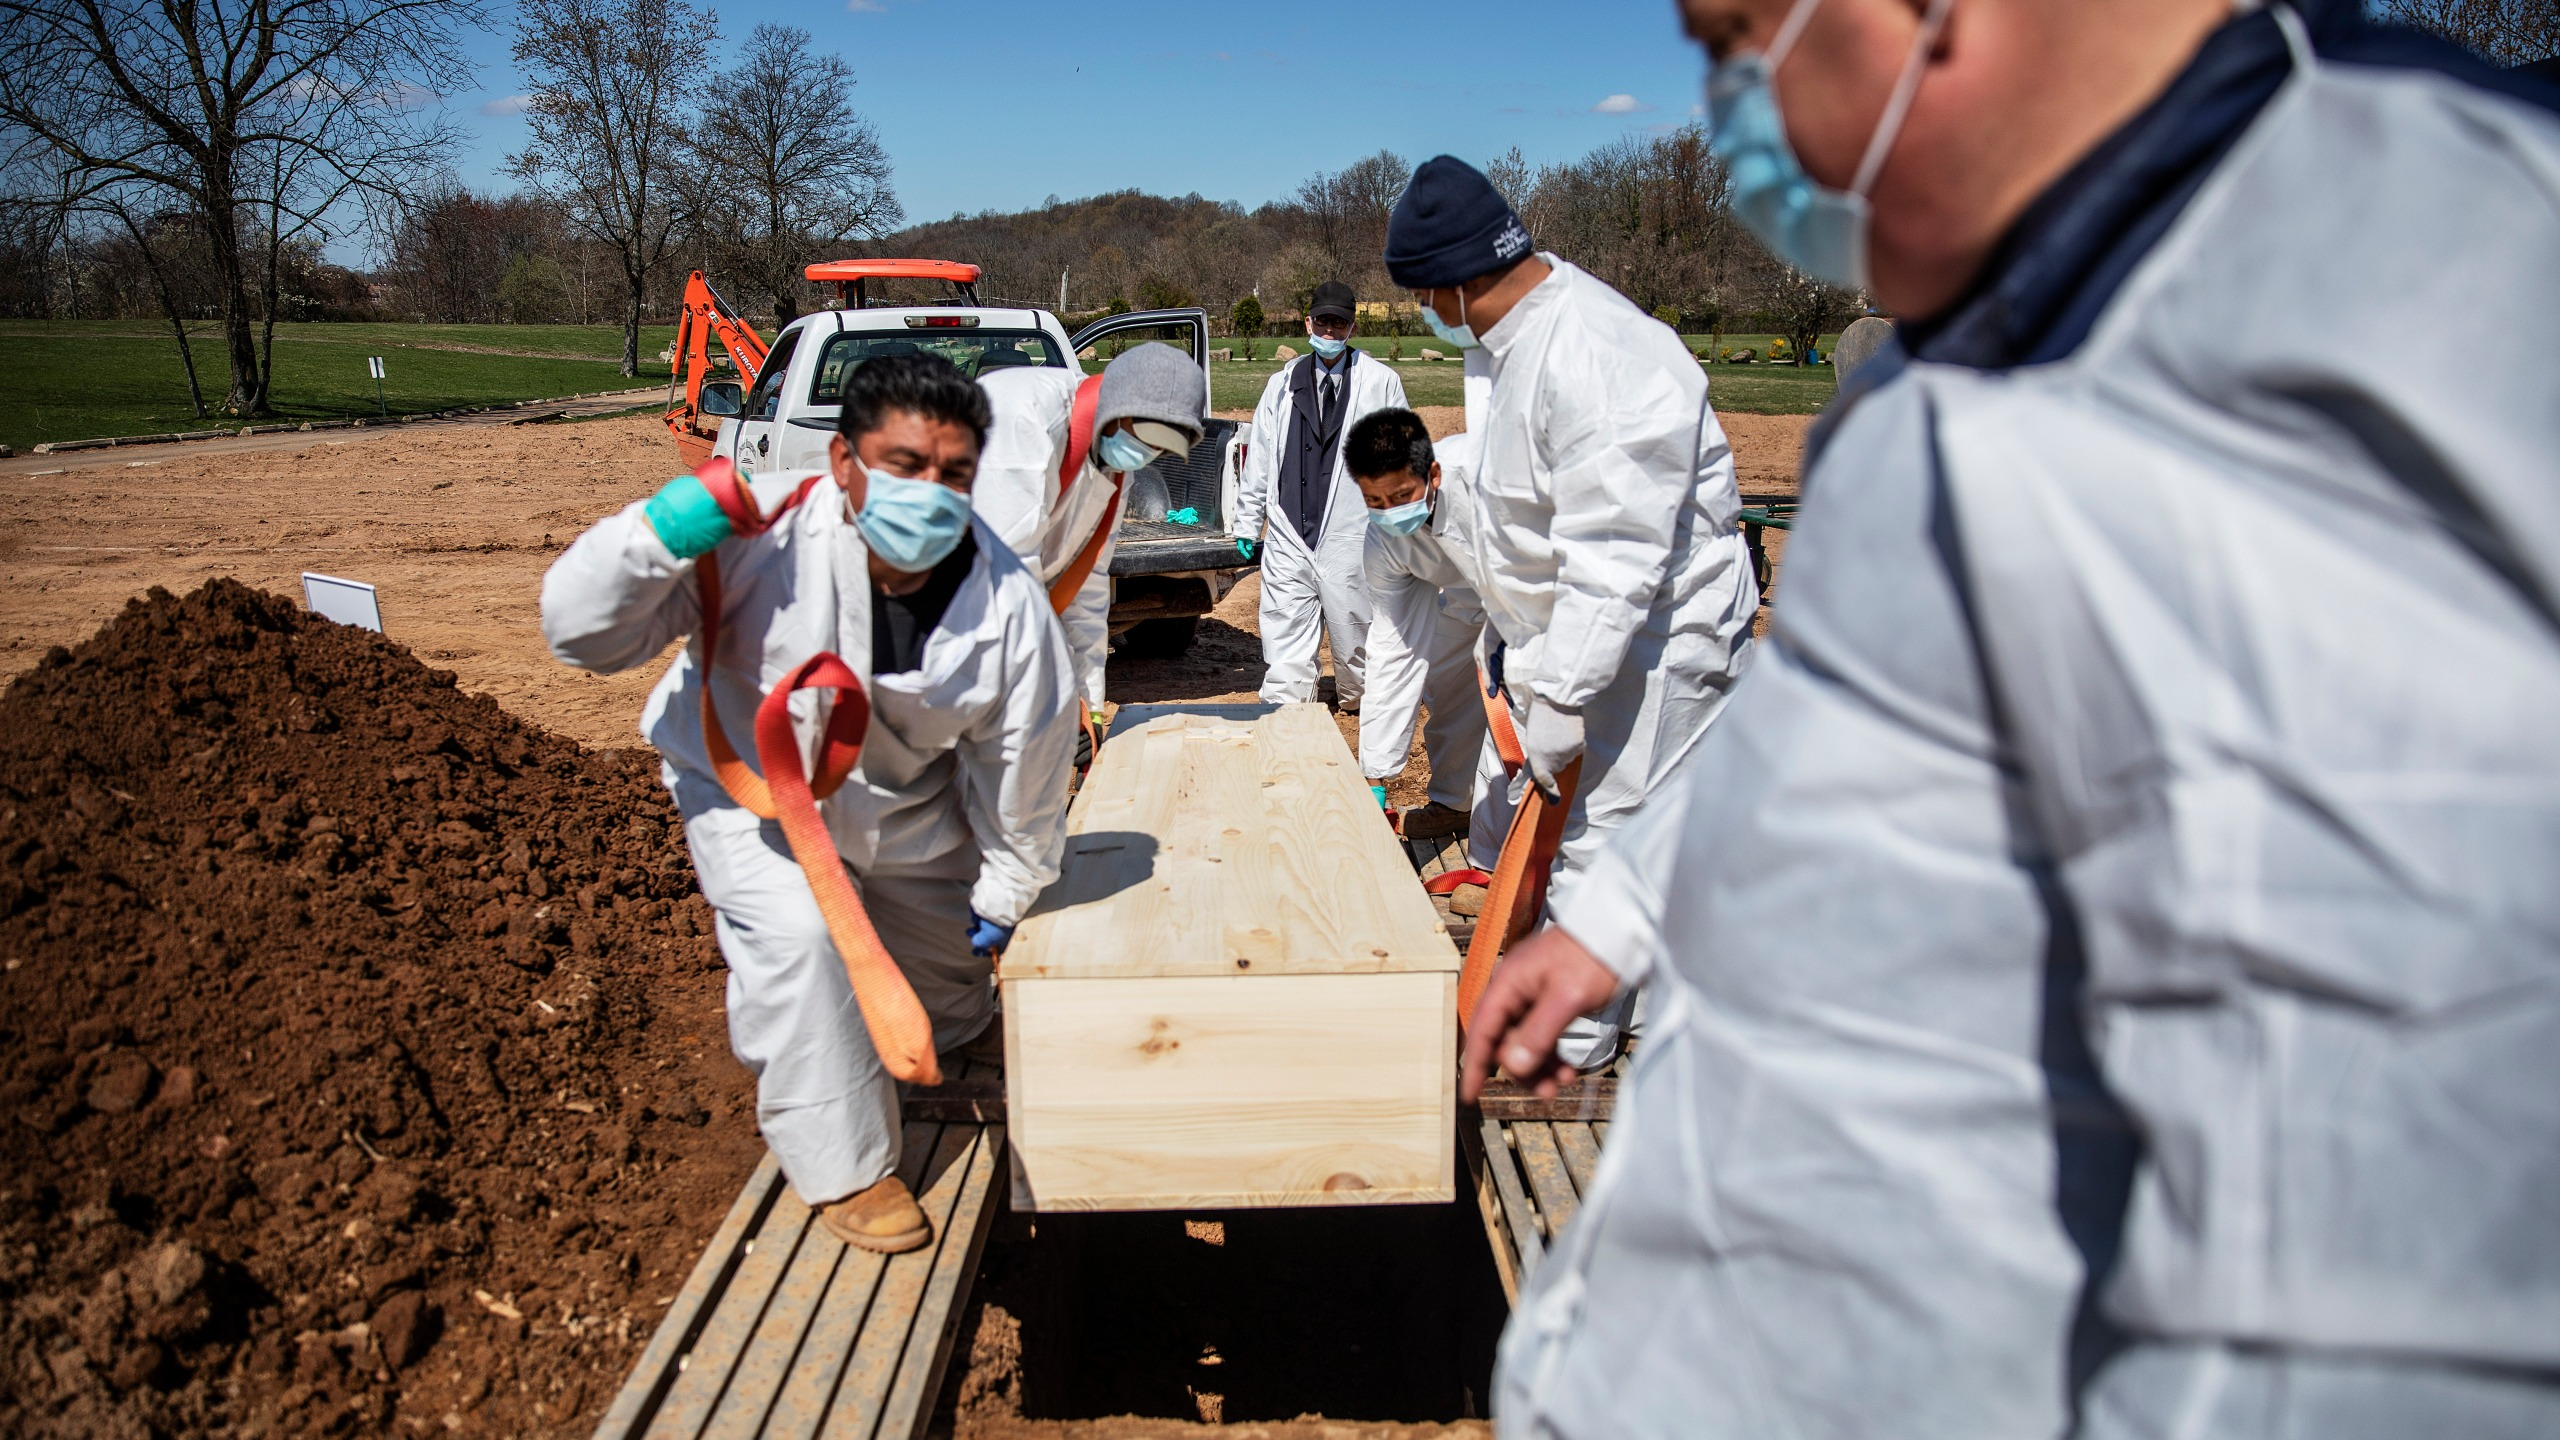 In this April 6, 2020, file photo, gravediggers lower the casket of someone who died of coronavirus at the Hebrew Free Burial Association's cemetery in the Staten Island borough of New York. The U.S. death toll from COVID-19 has topped 500,000 — a number so staggering that a top health researchers says it is hard to imagine an American who hasn't lost a relative or doesn't know someone who died. (AP Photo/David Goldman, File)